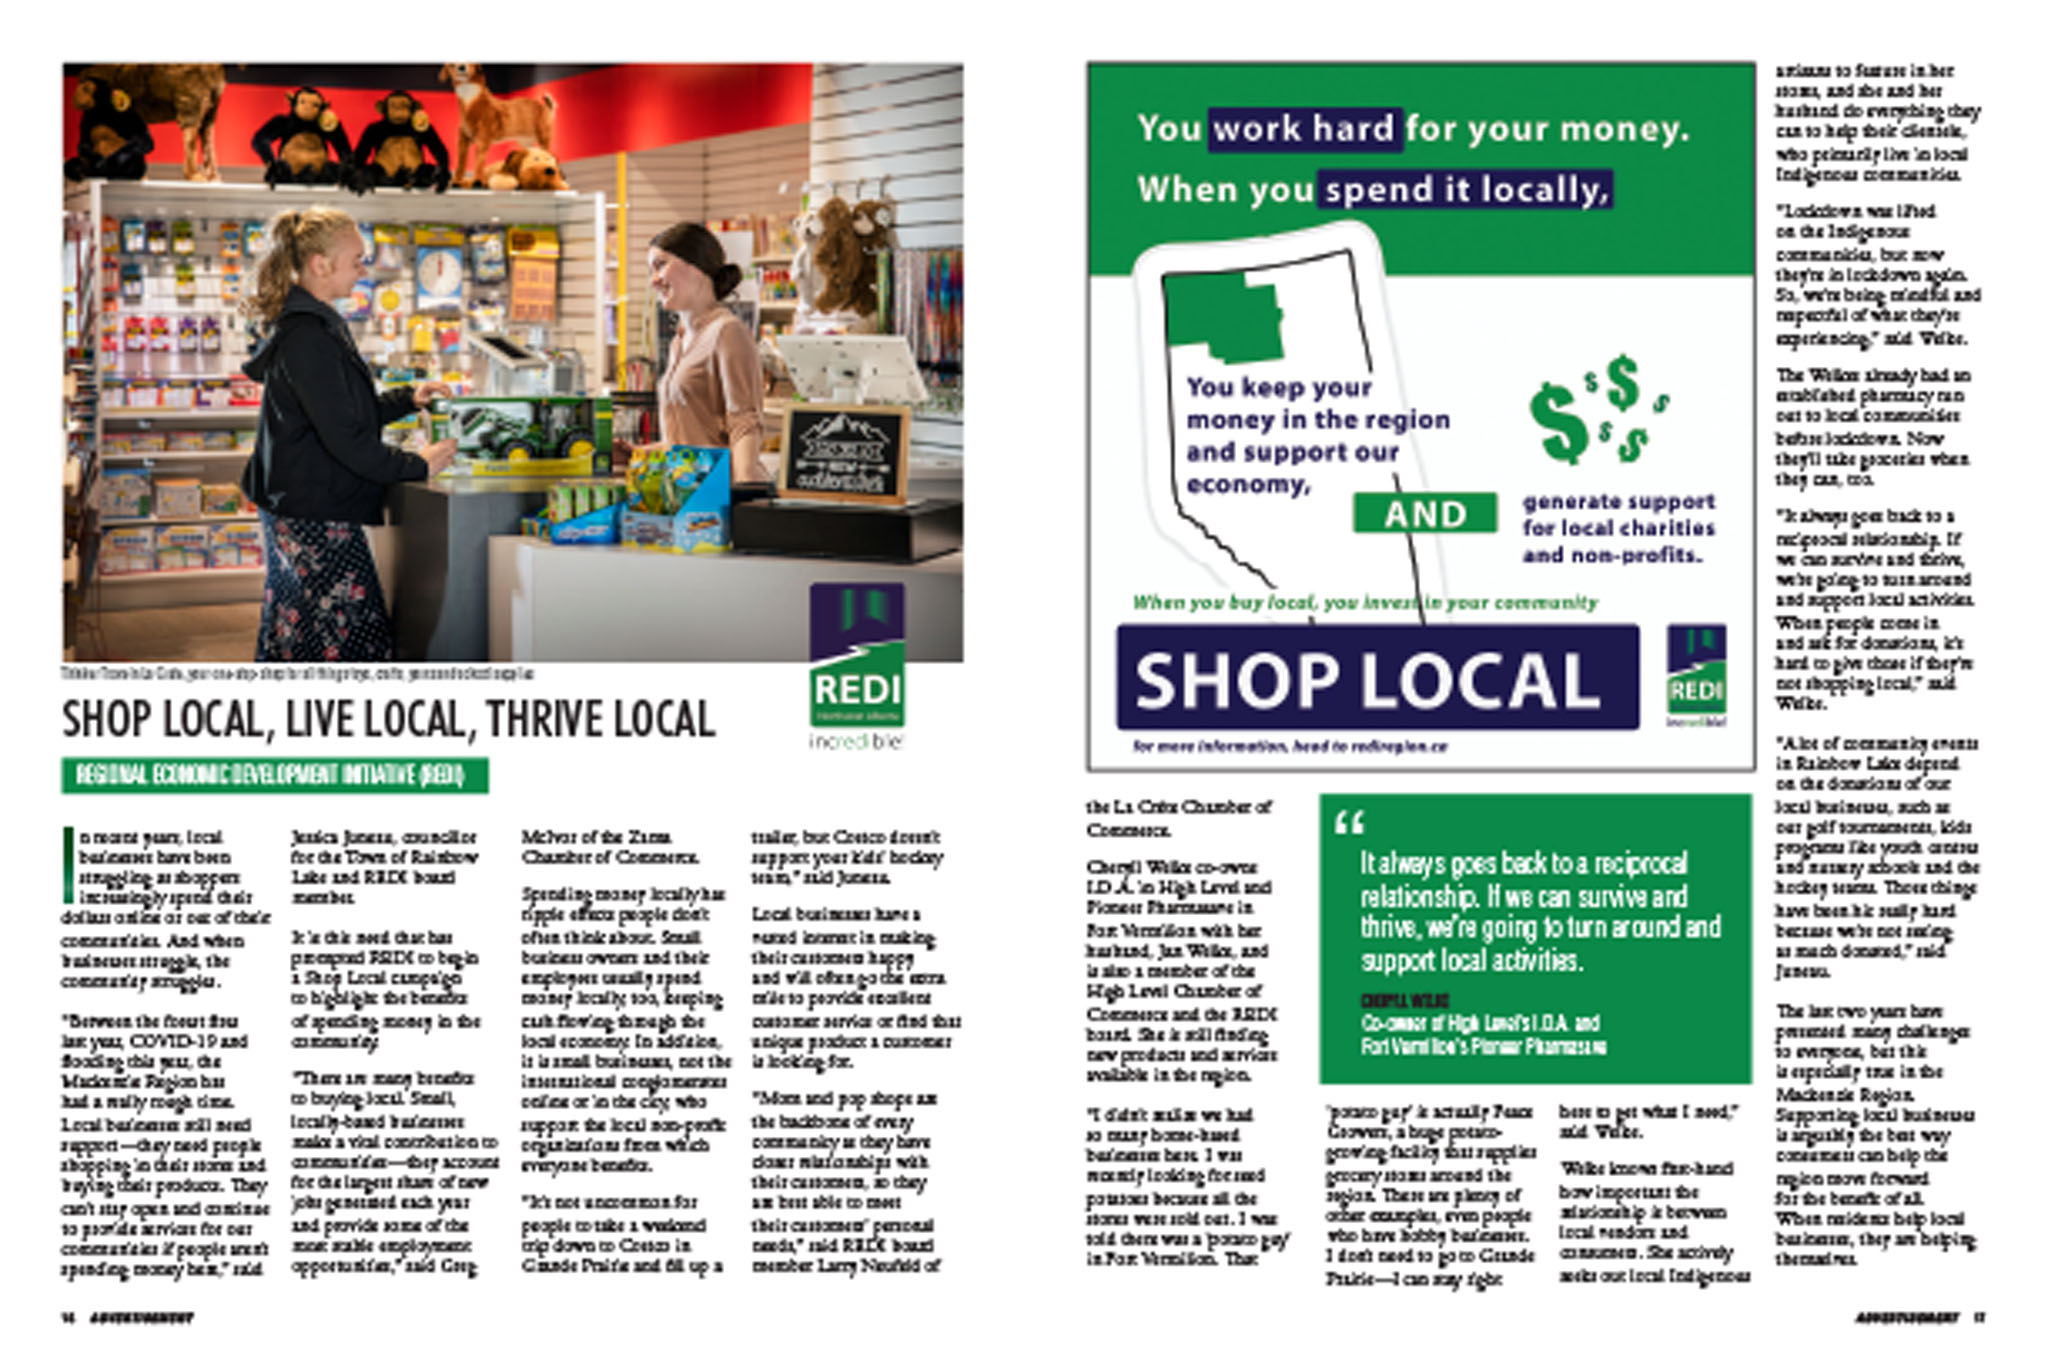 August 2020 - Shop Local Campaign